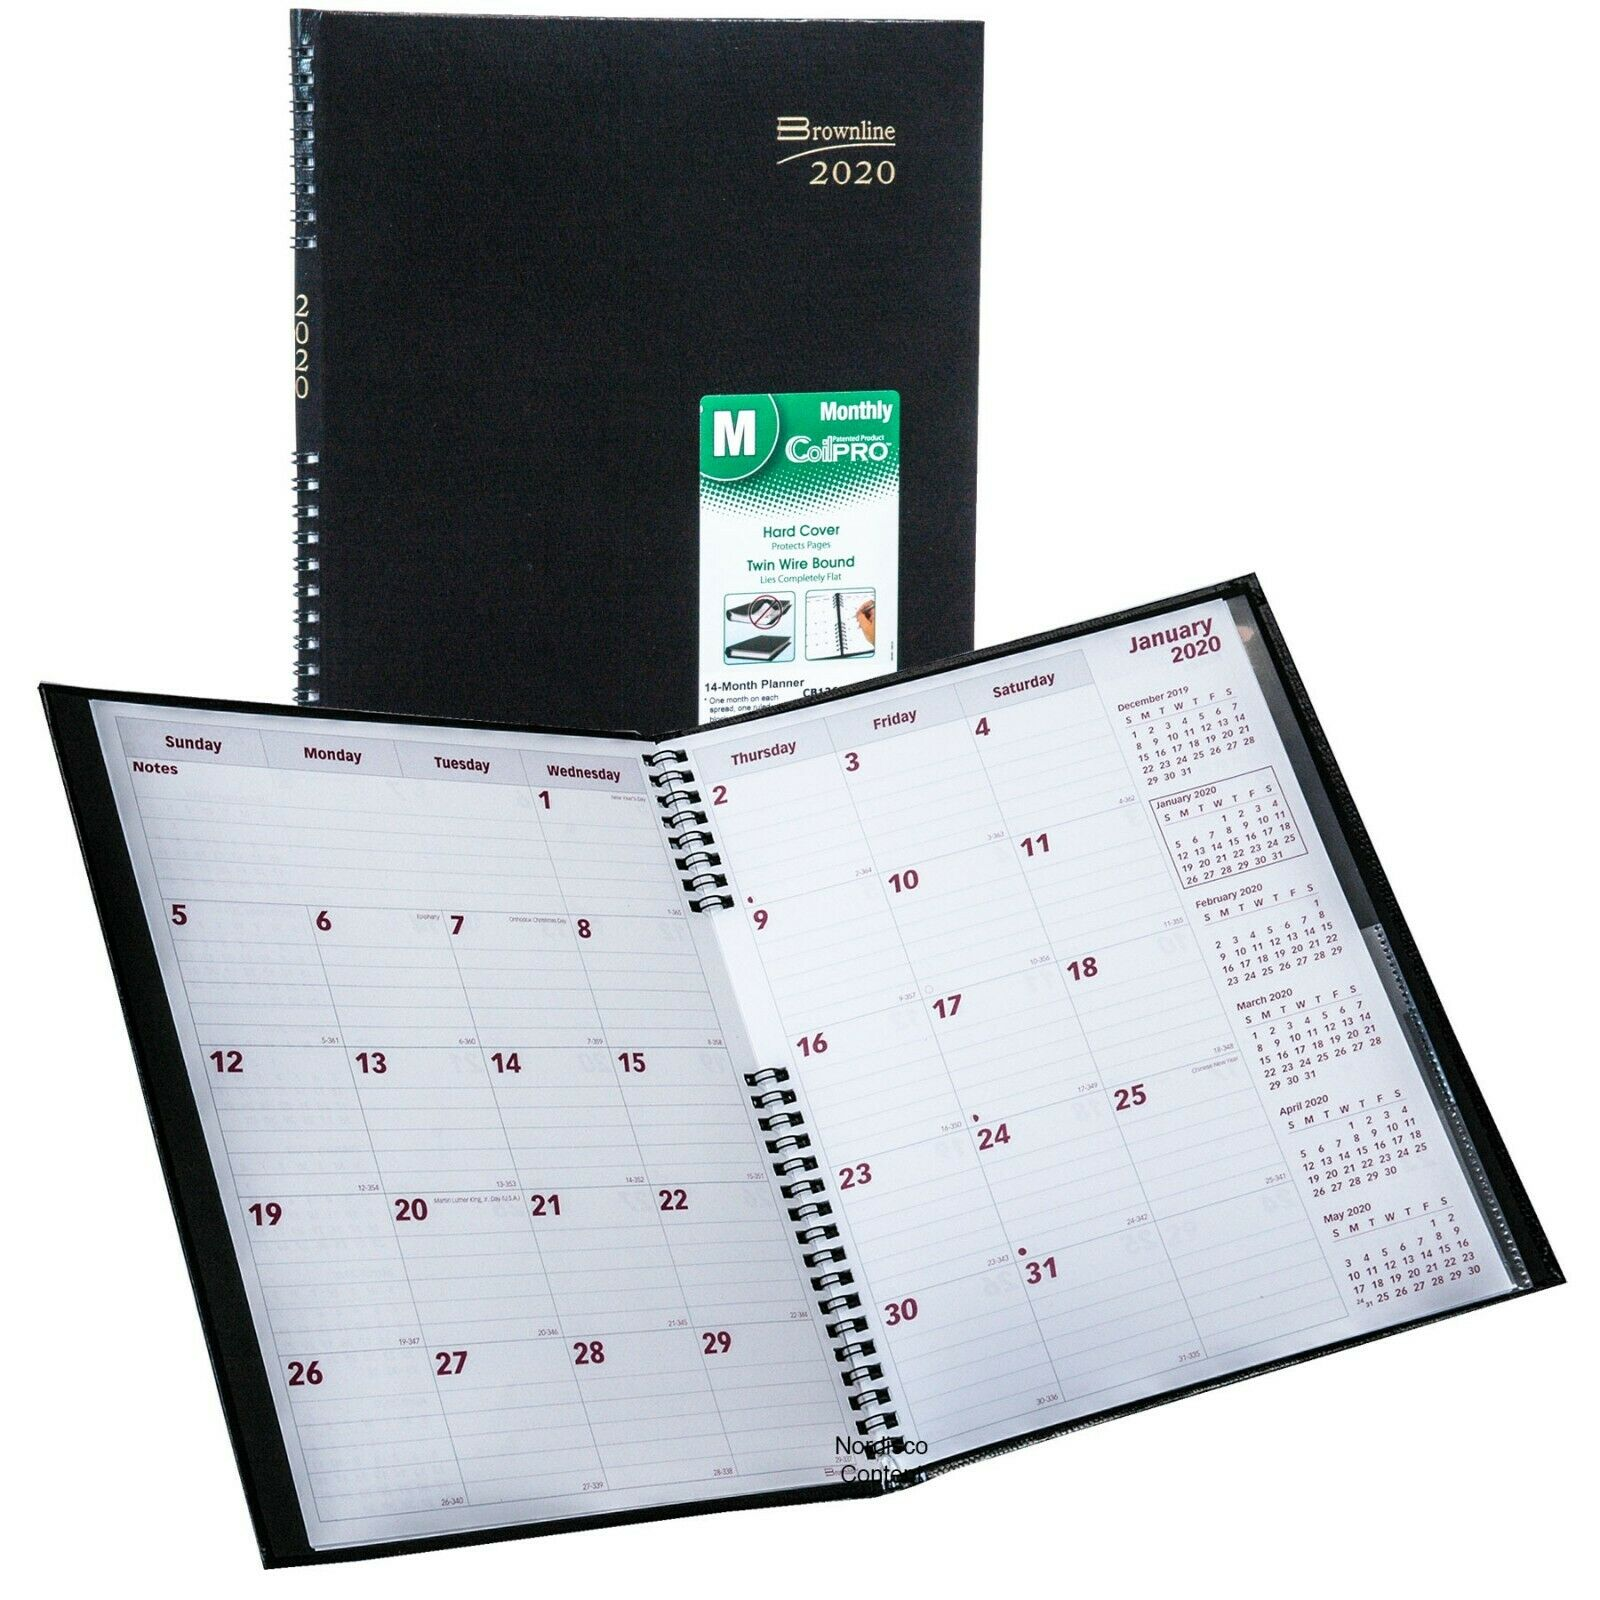 2020 Brownline CB1262C.BLK Monthly Planner, CoilPRO, Hard Co